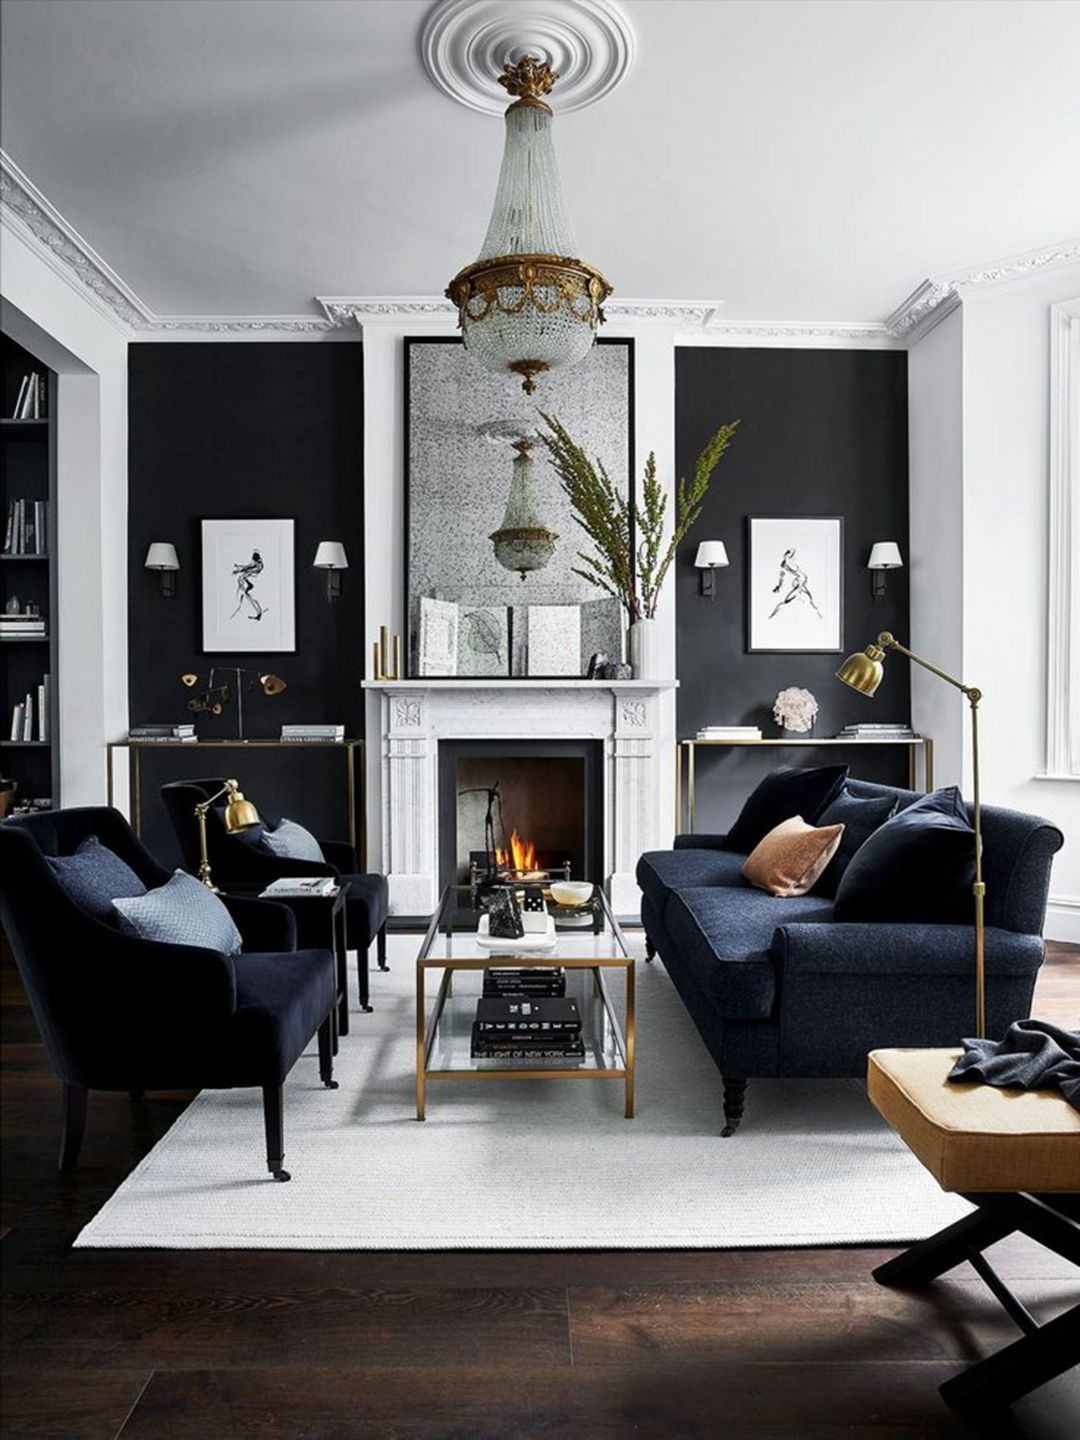 15 luxurious black living room ideas to inspire you